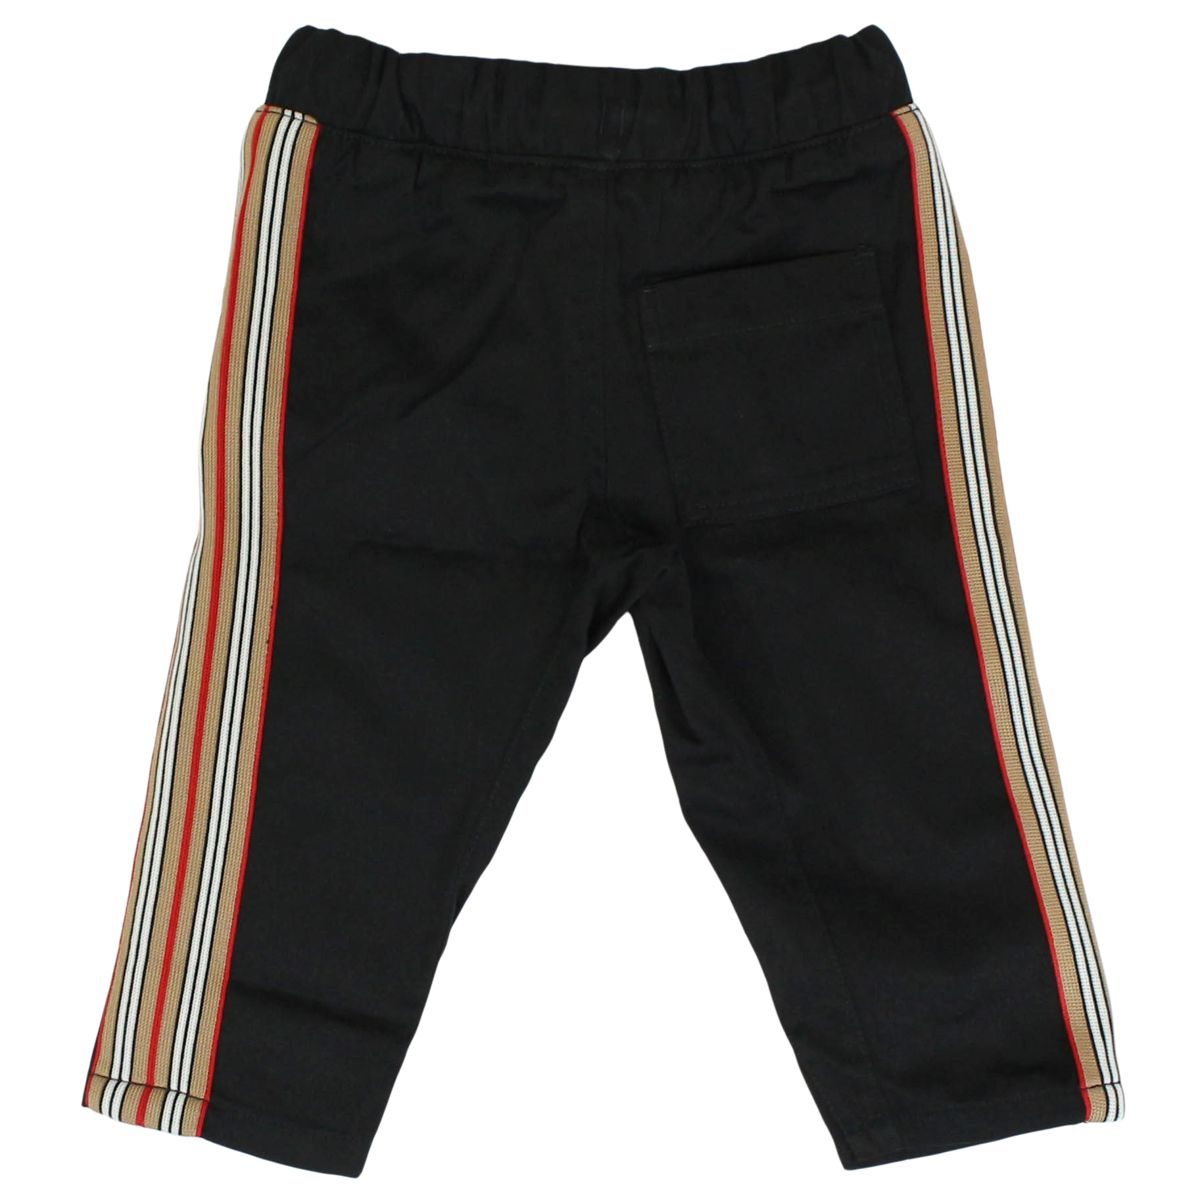 Cotton jojjing trousers with striped bands Black Burberry